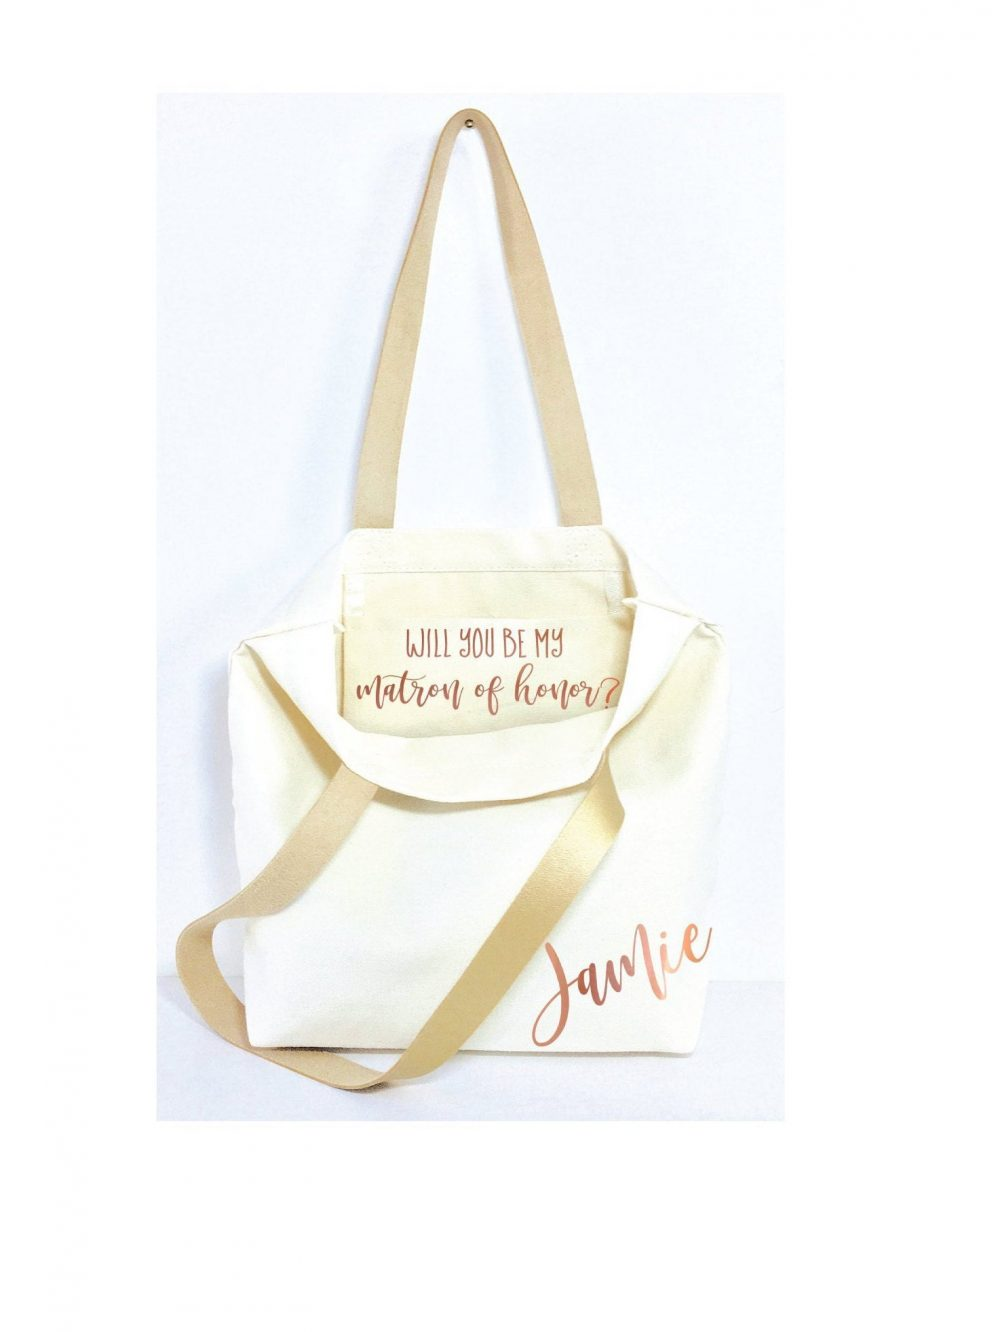 Will You Be My Matron Of Honor, Proposal Gift Ideas, Wedding, Bridesmaids' Gifts, Wedding Favors, Wedding Gift, Bridal Shower